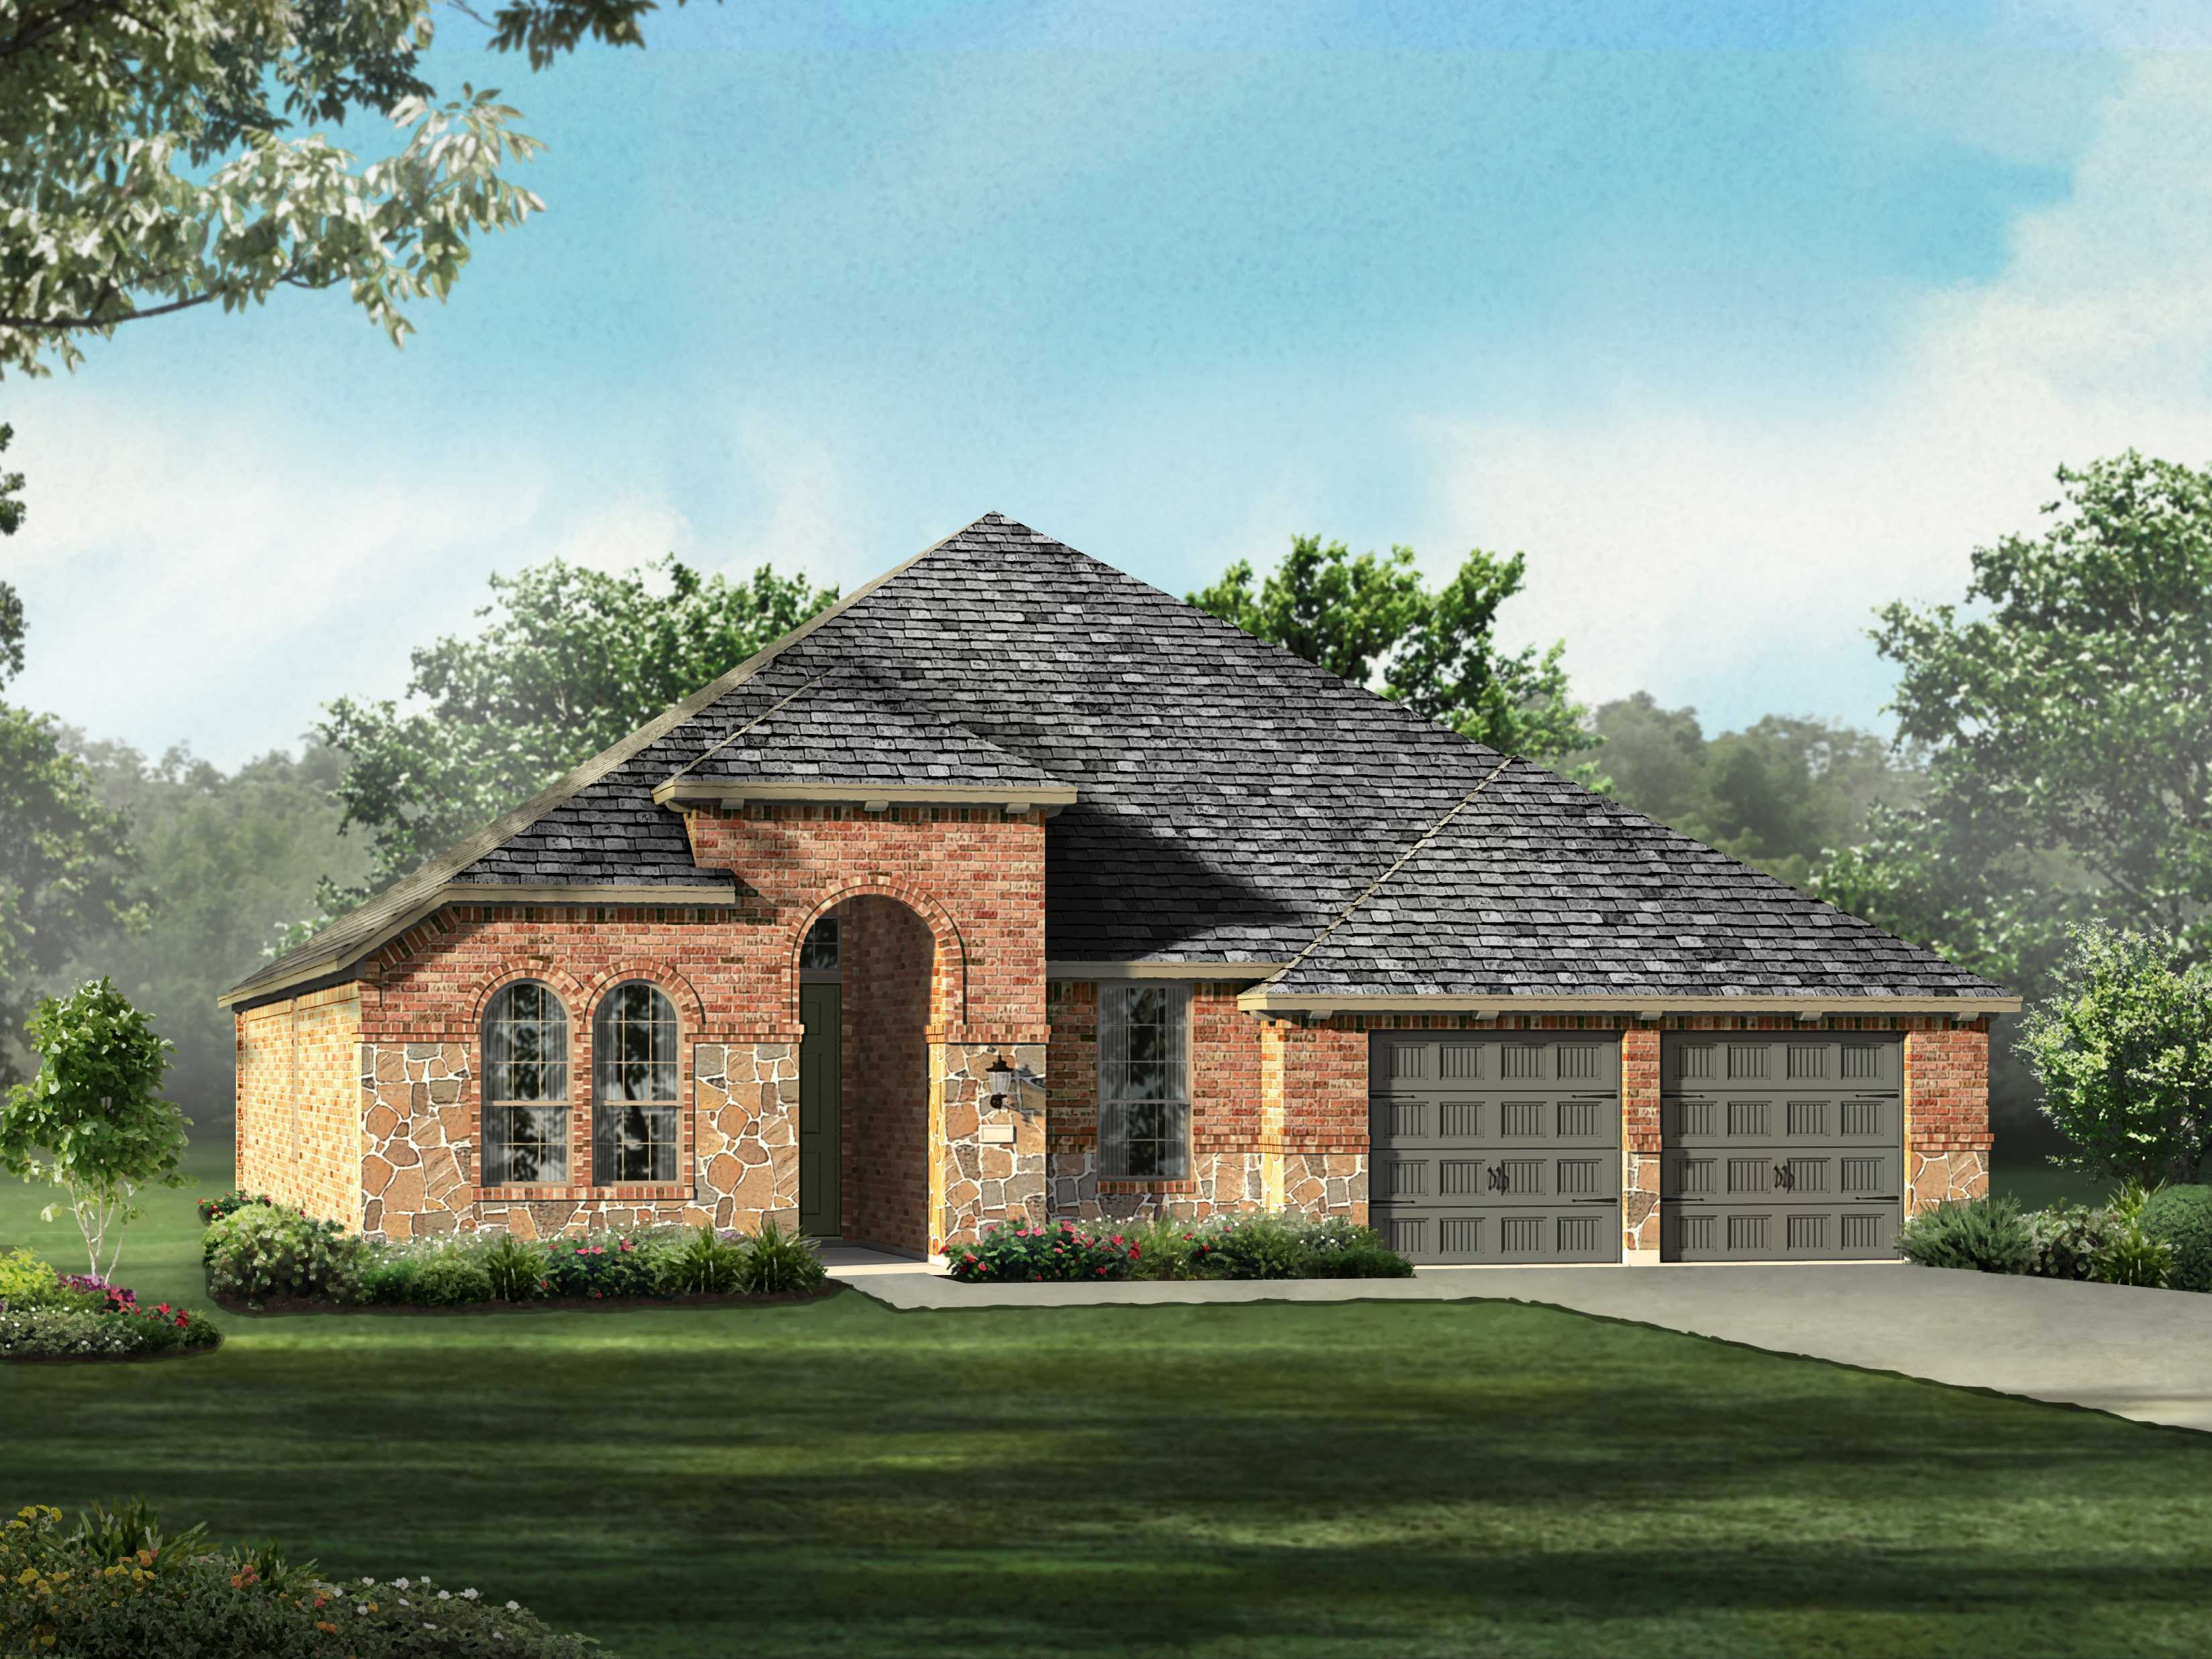 Single Family for Sale at Lakeside At Tessera On Lake Travis 80s - Plan 204 8012 Turning Leaf Circle Lago Vista, Texas 78645 United States